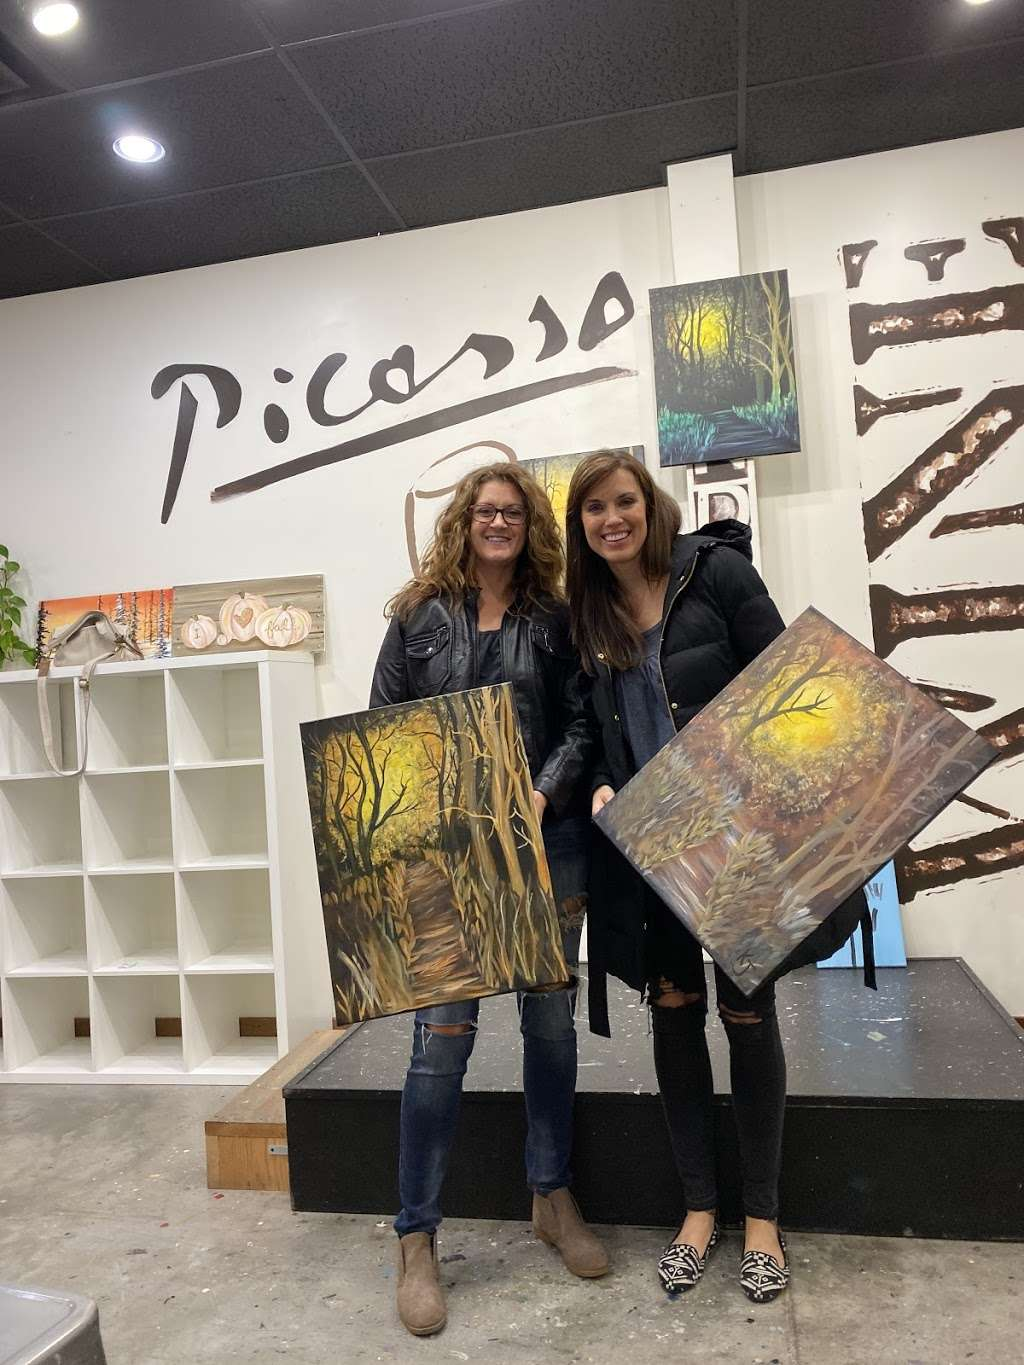 Picasso and Wine - store    Photo 10 of 10   Address: 1540 Main St #236, Windsor, CO 80550, USA   Phone: (970) 460-0833